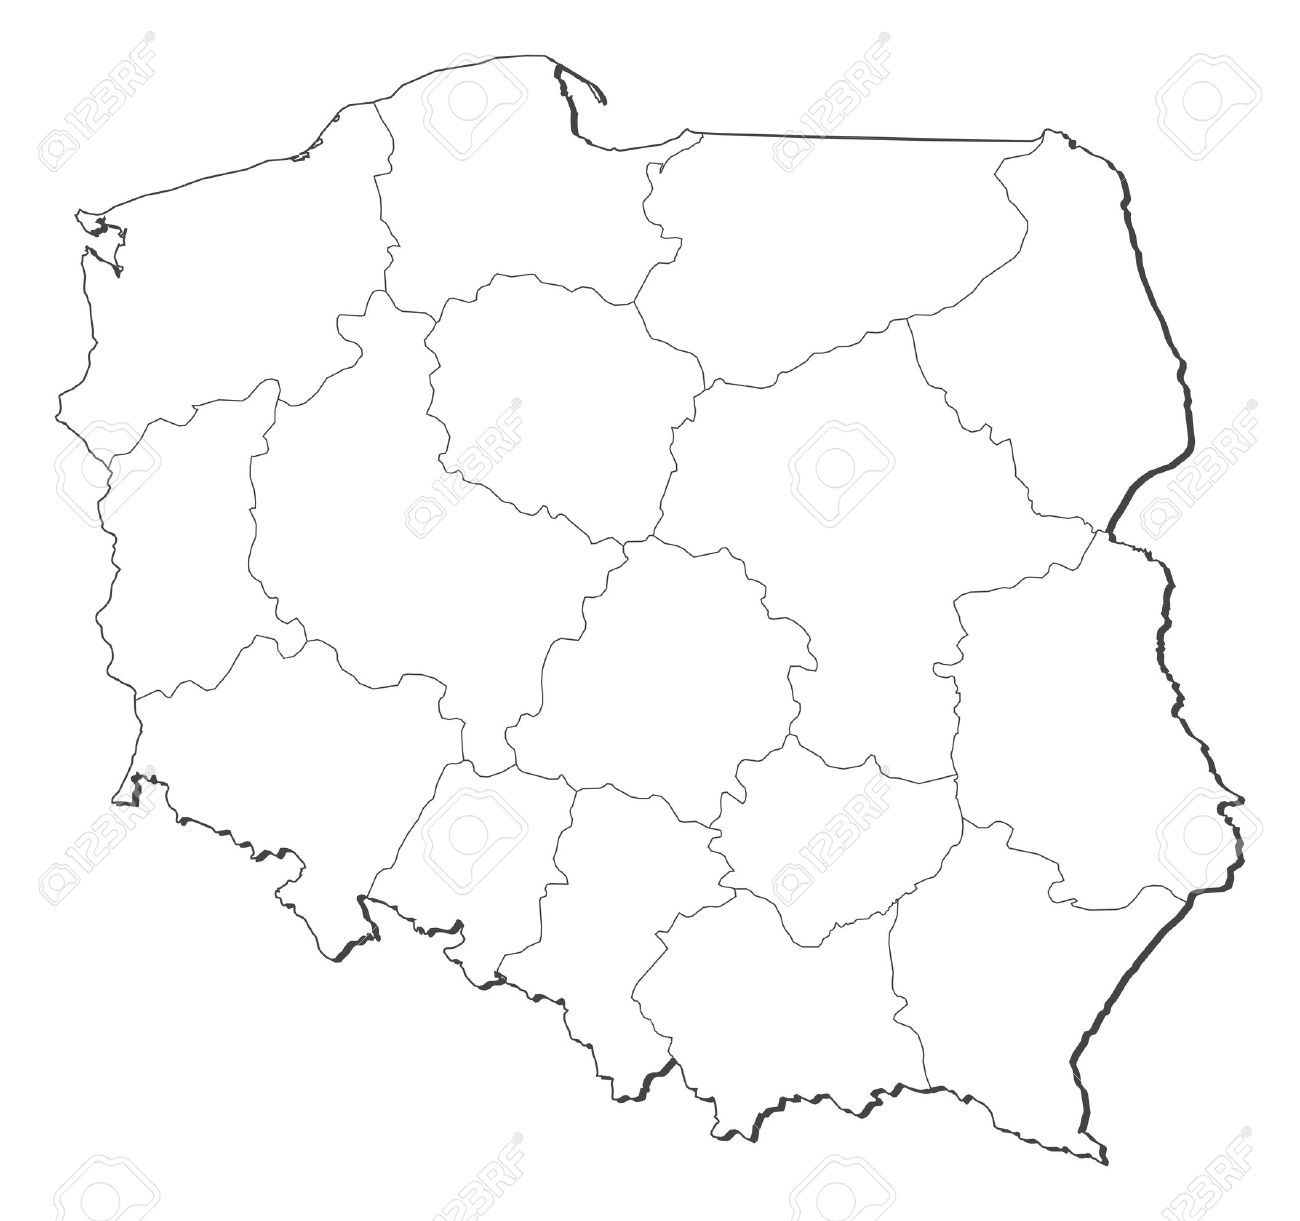 Political map of Poland with the several provinces (voivodschips). - 11452098